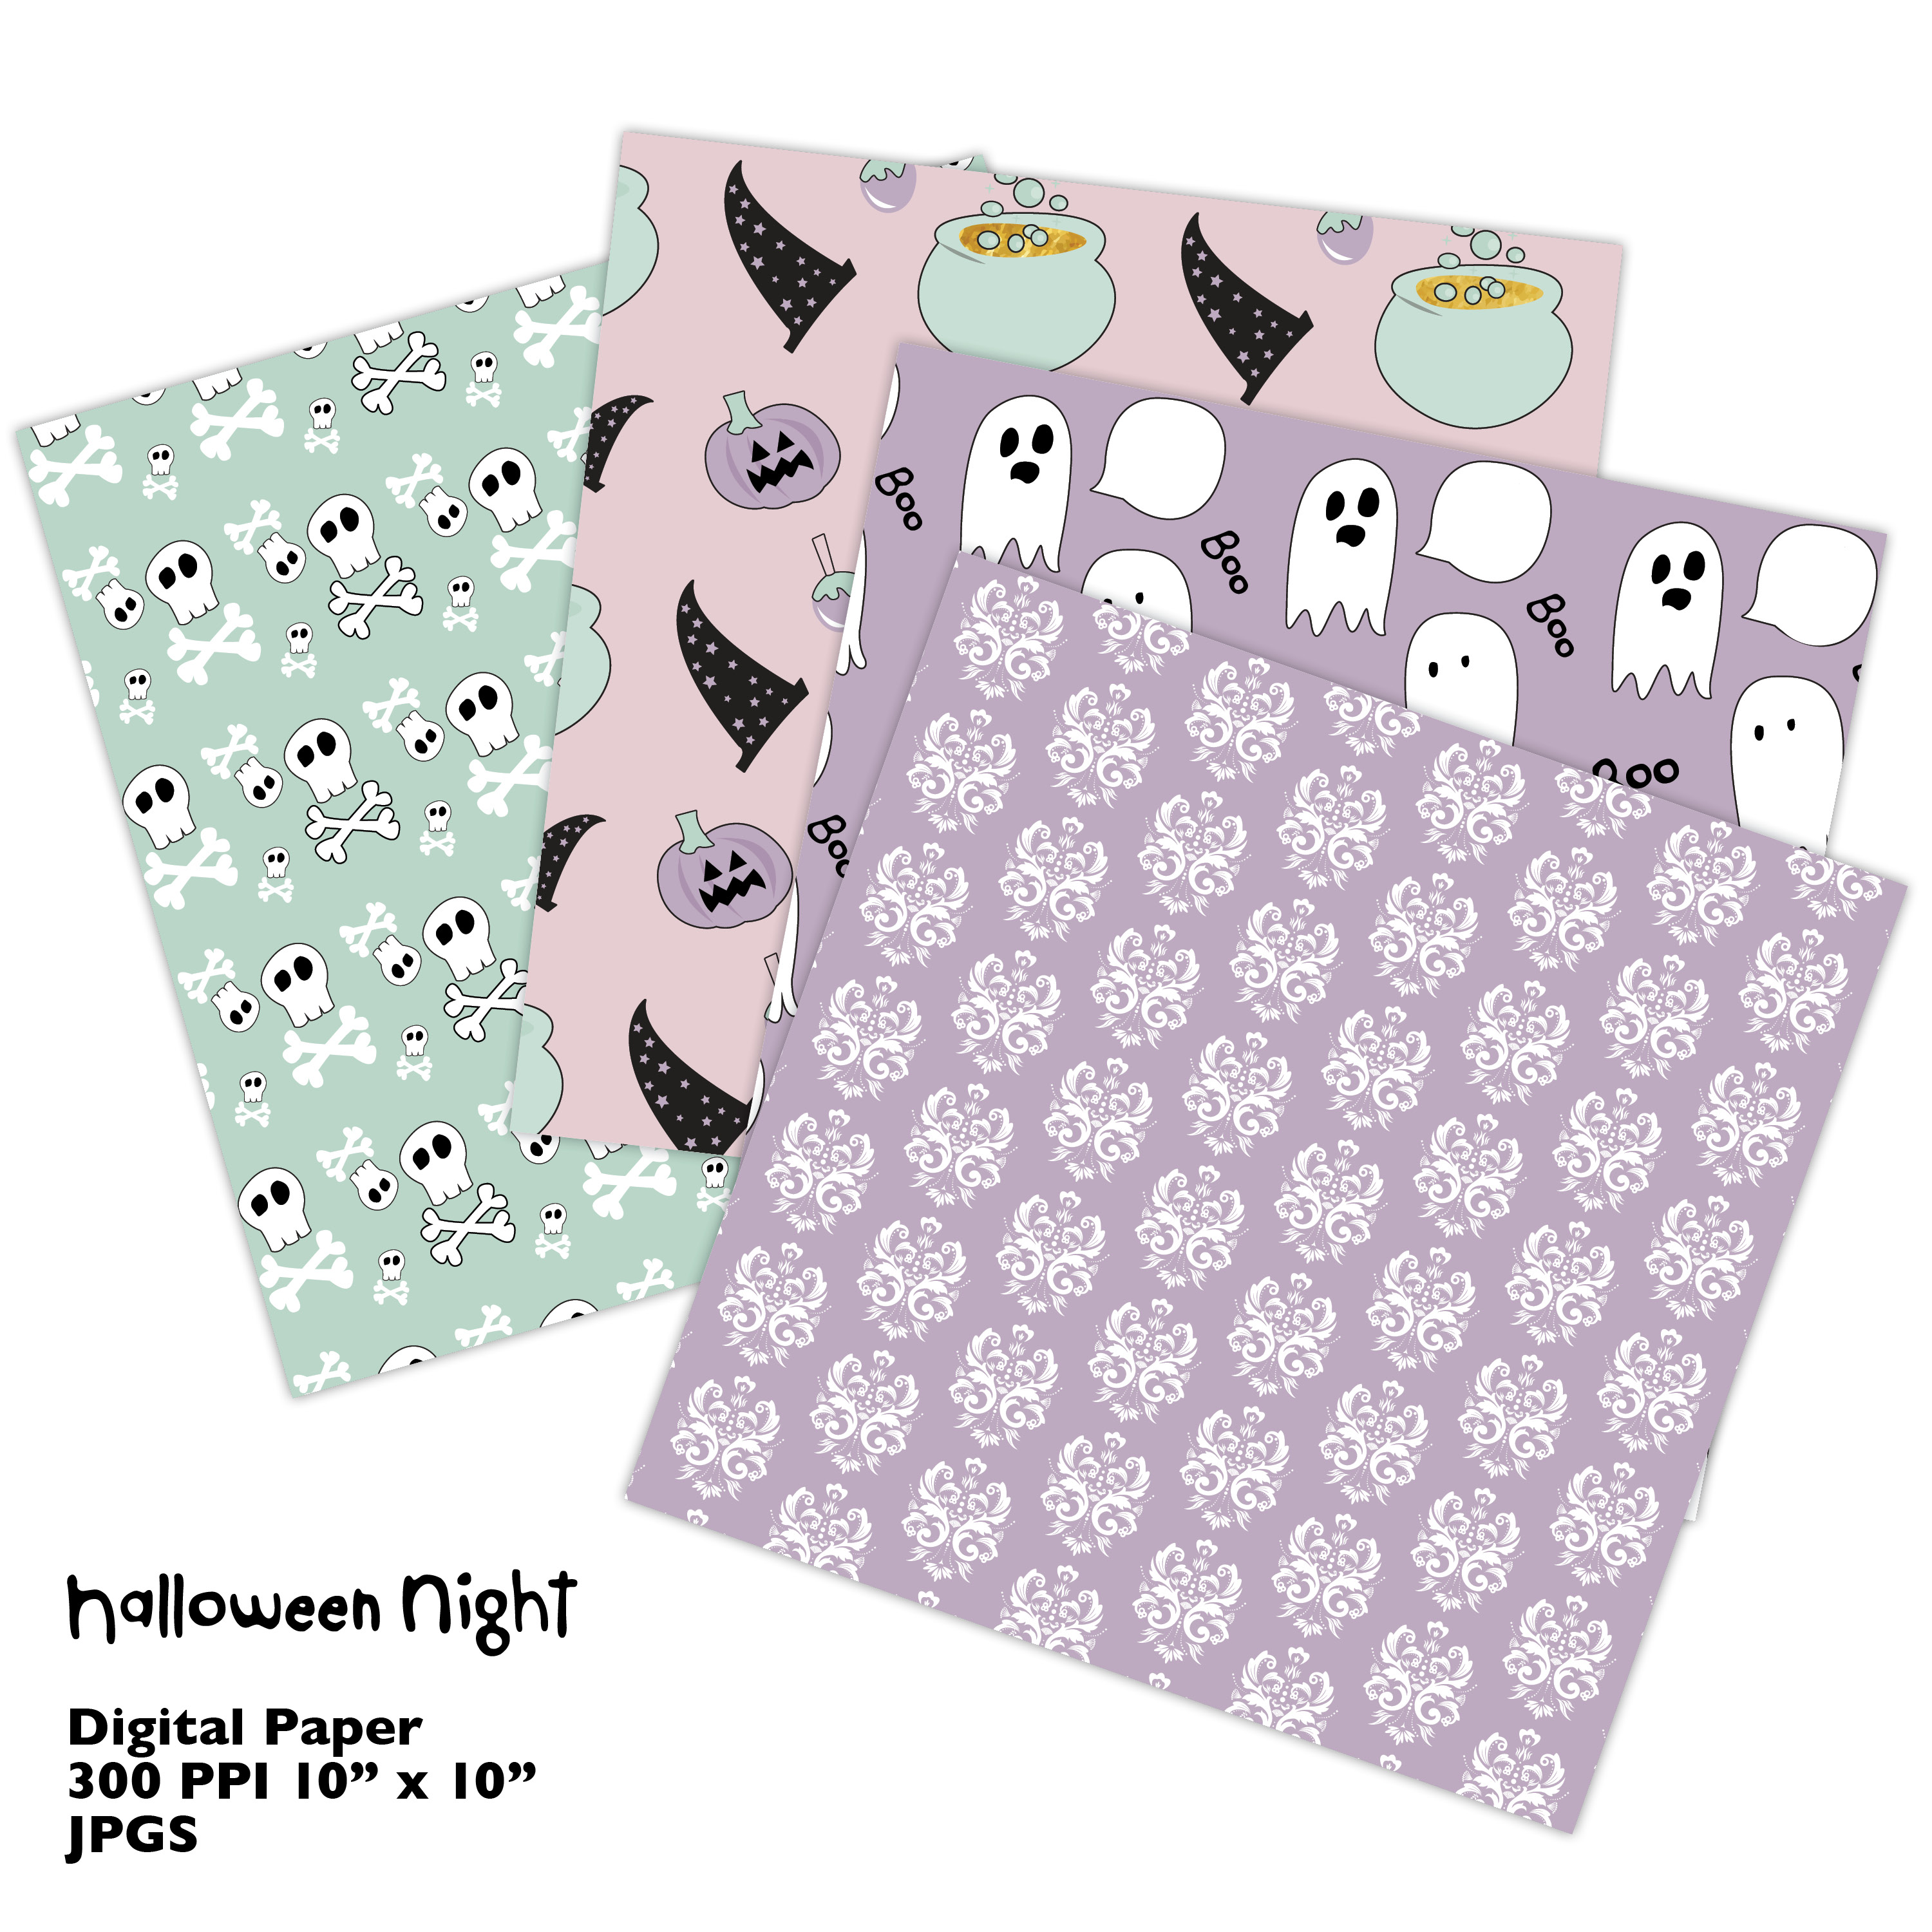 Hand Drawn Halloween Digital Paper in Pastel Colors example image 6